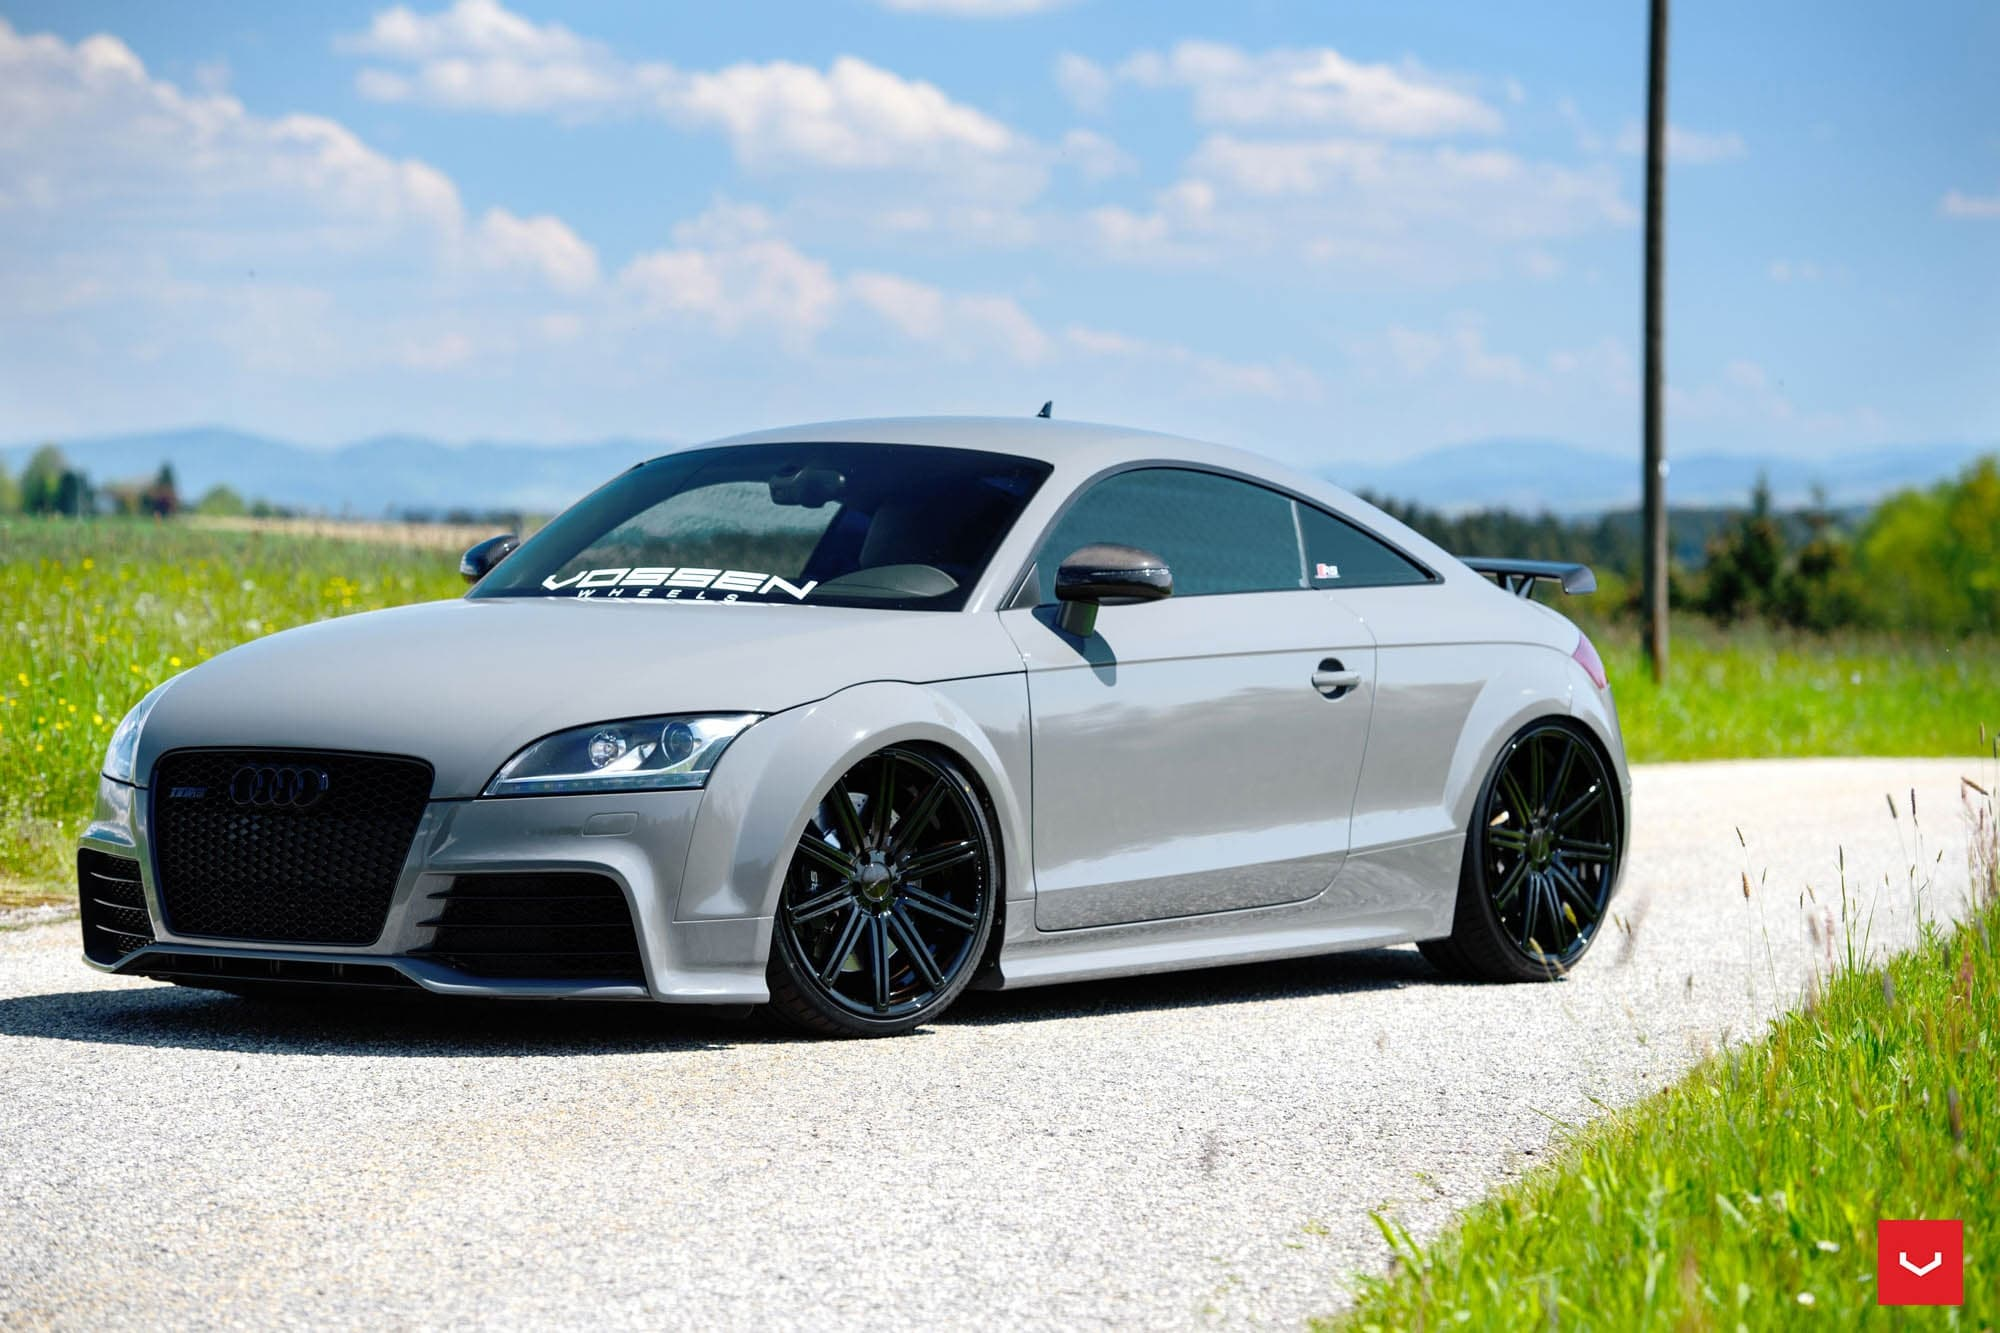 Audi Concept Car Wallpaper Audi Tt Rs Tuning Wallpapers Hd Sport Vossen Wheels